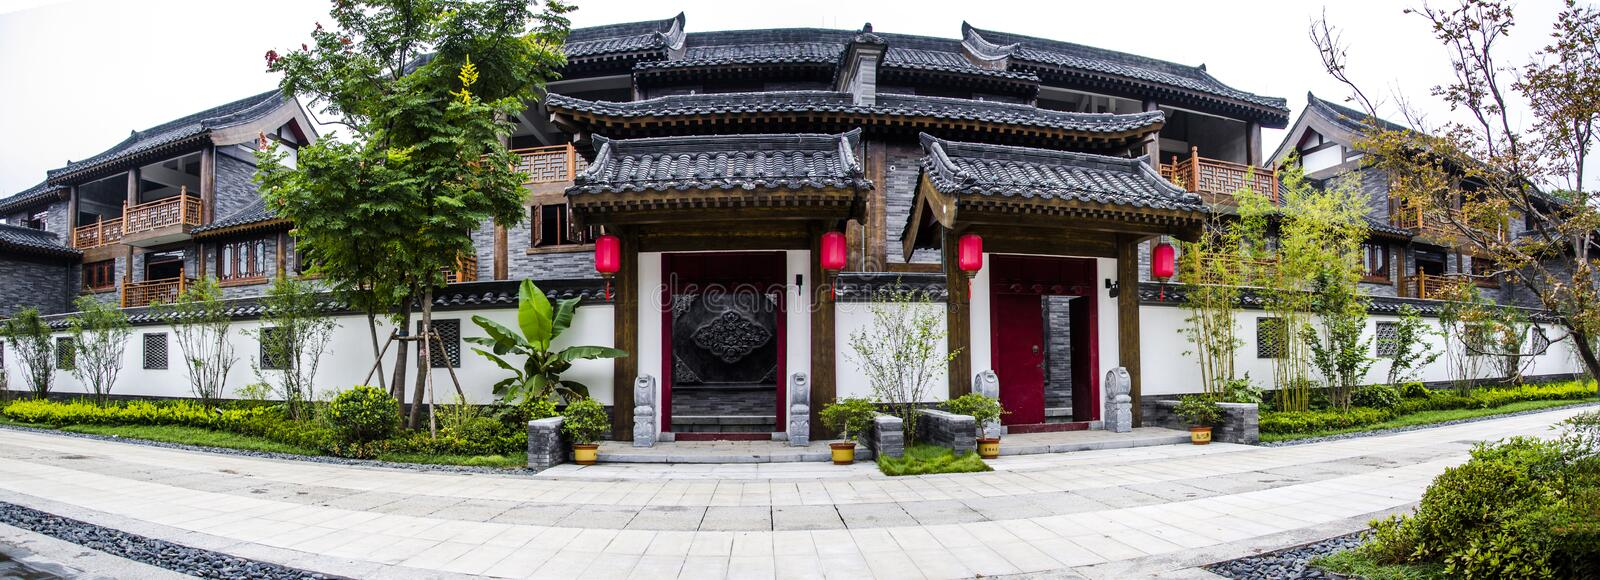 Red lantern and ancient architecture. Henan province has a long tradition culture and history which has many excellent cultural projects from time immemorial stock photos